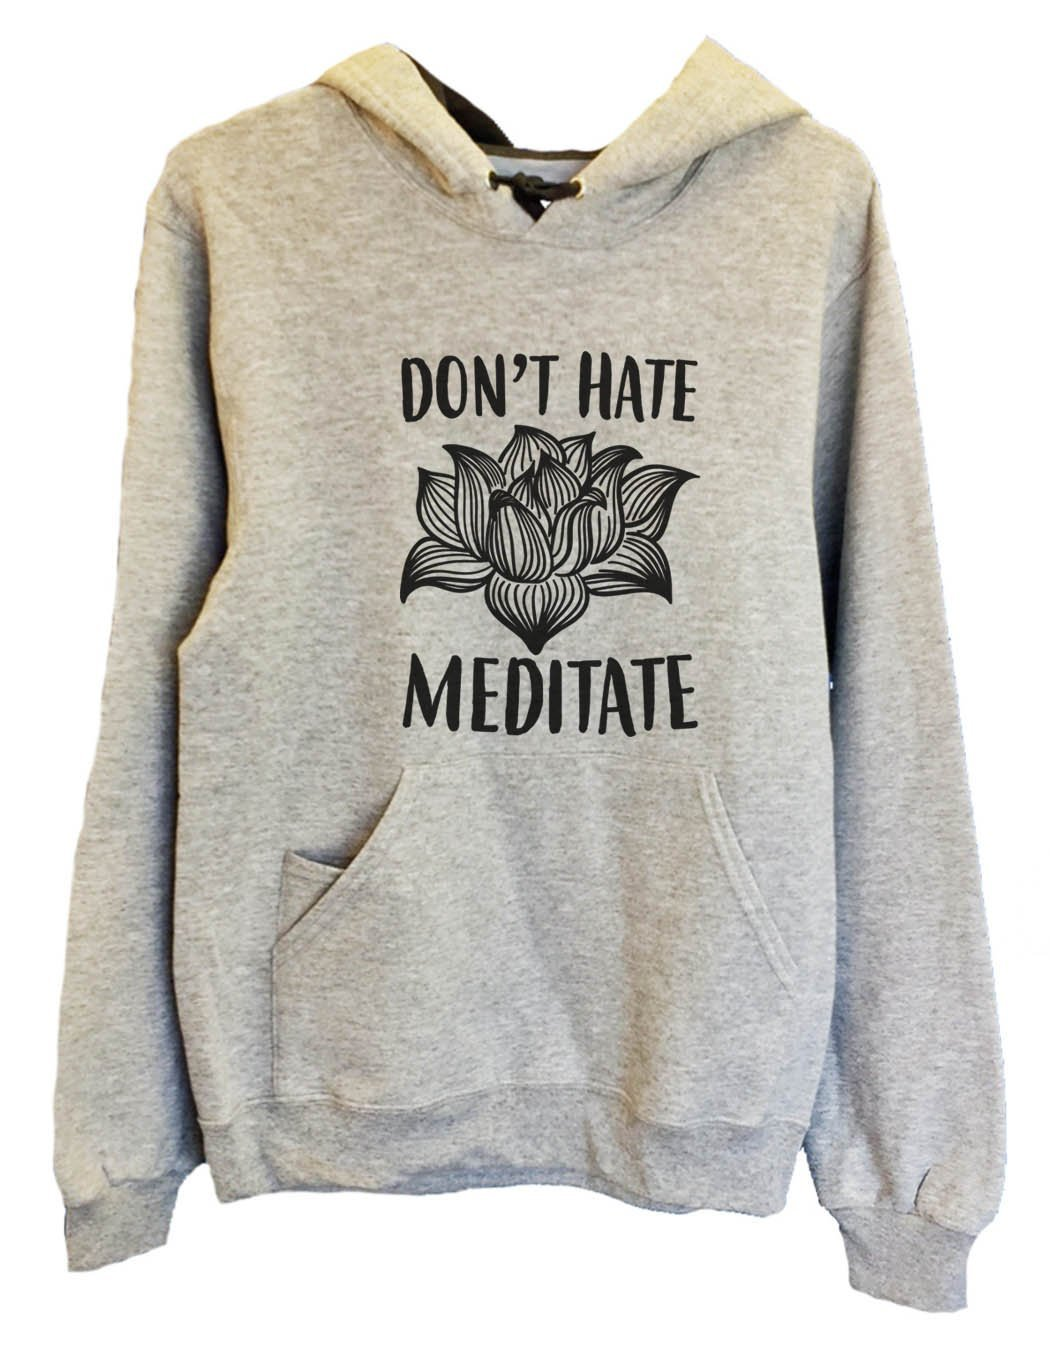 UNISEX HOODIE - Don't Hate Meditate - FUNNY MENS AND WOMENS HOODED SWEATSHIRTS - 2114 Funny Shirt Small / Heather Grey